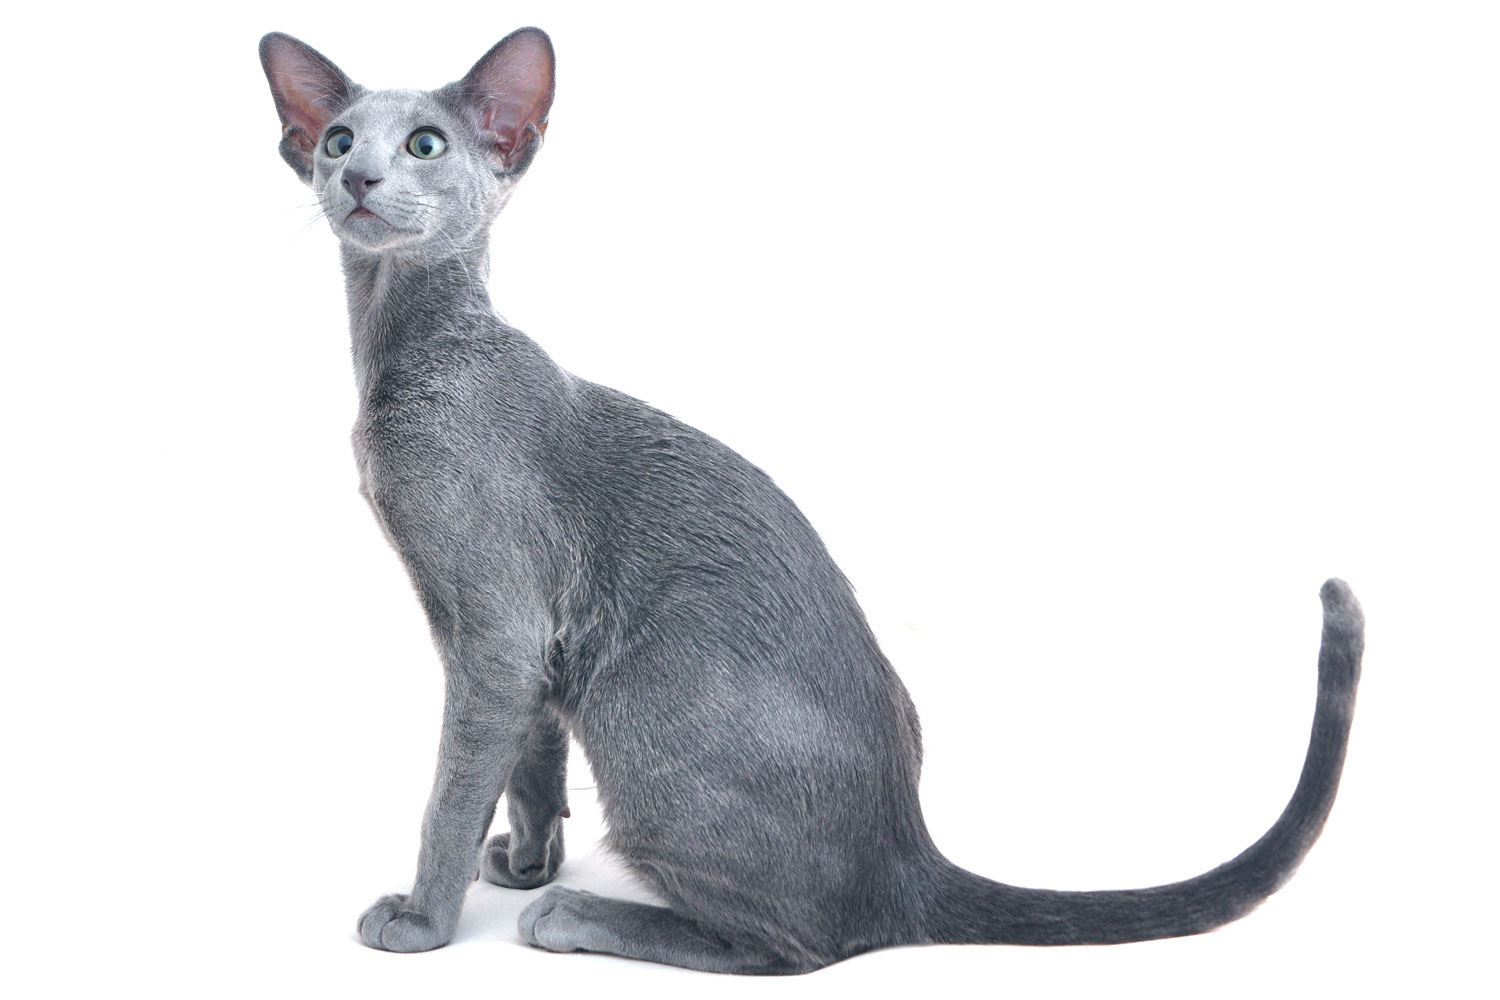 A gray oriental cat isolated on a white background